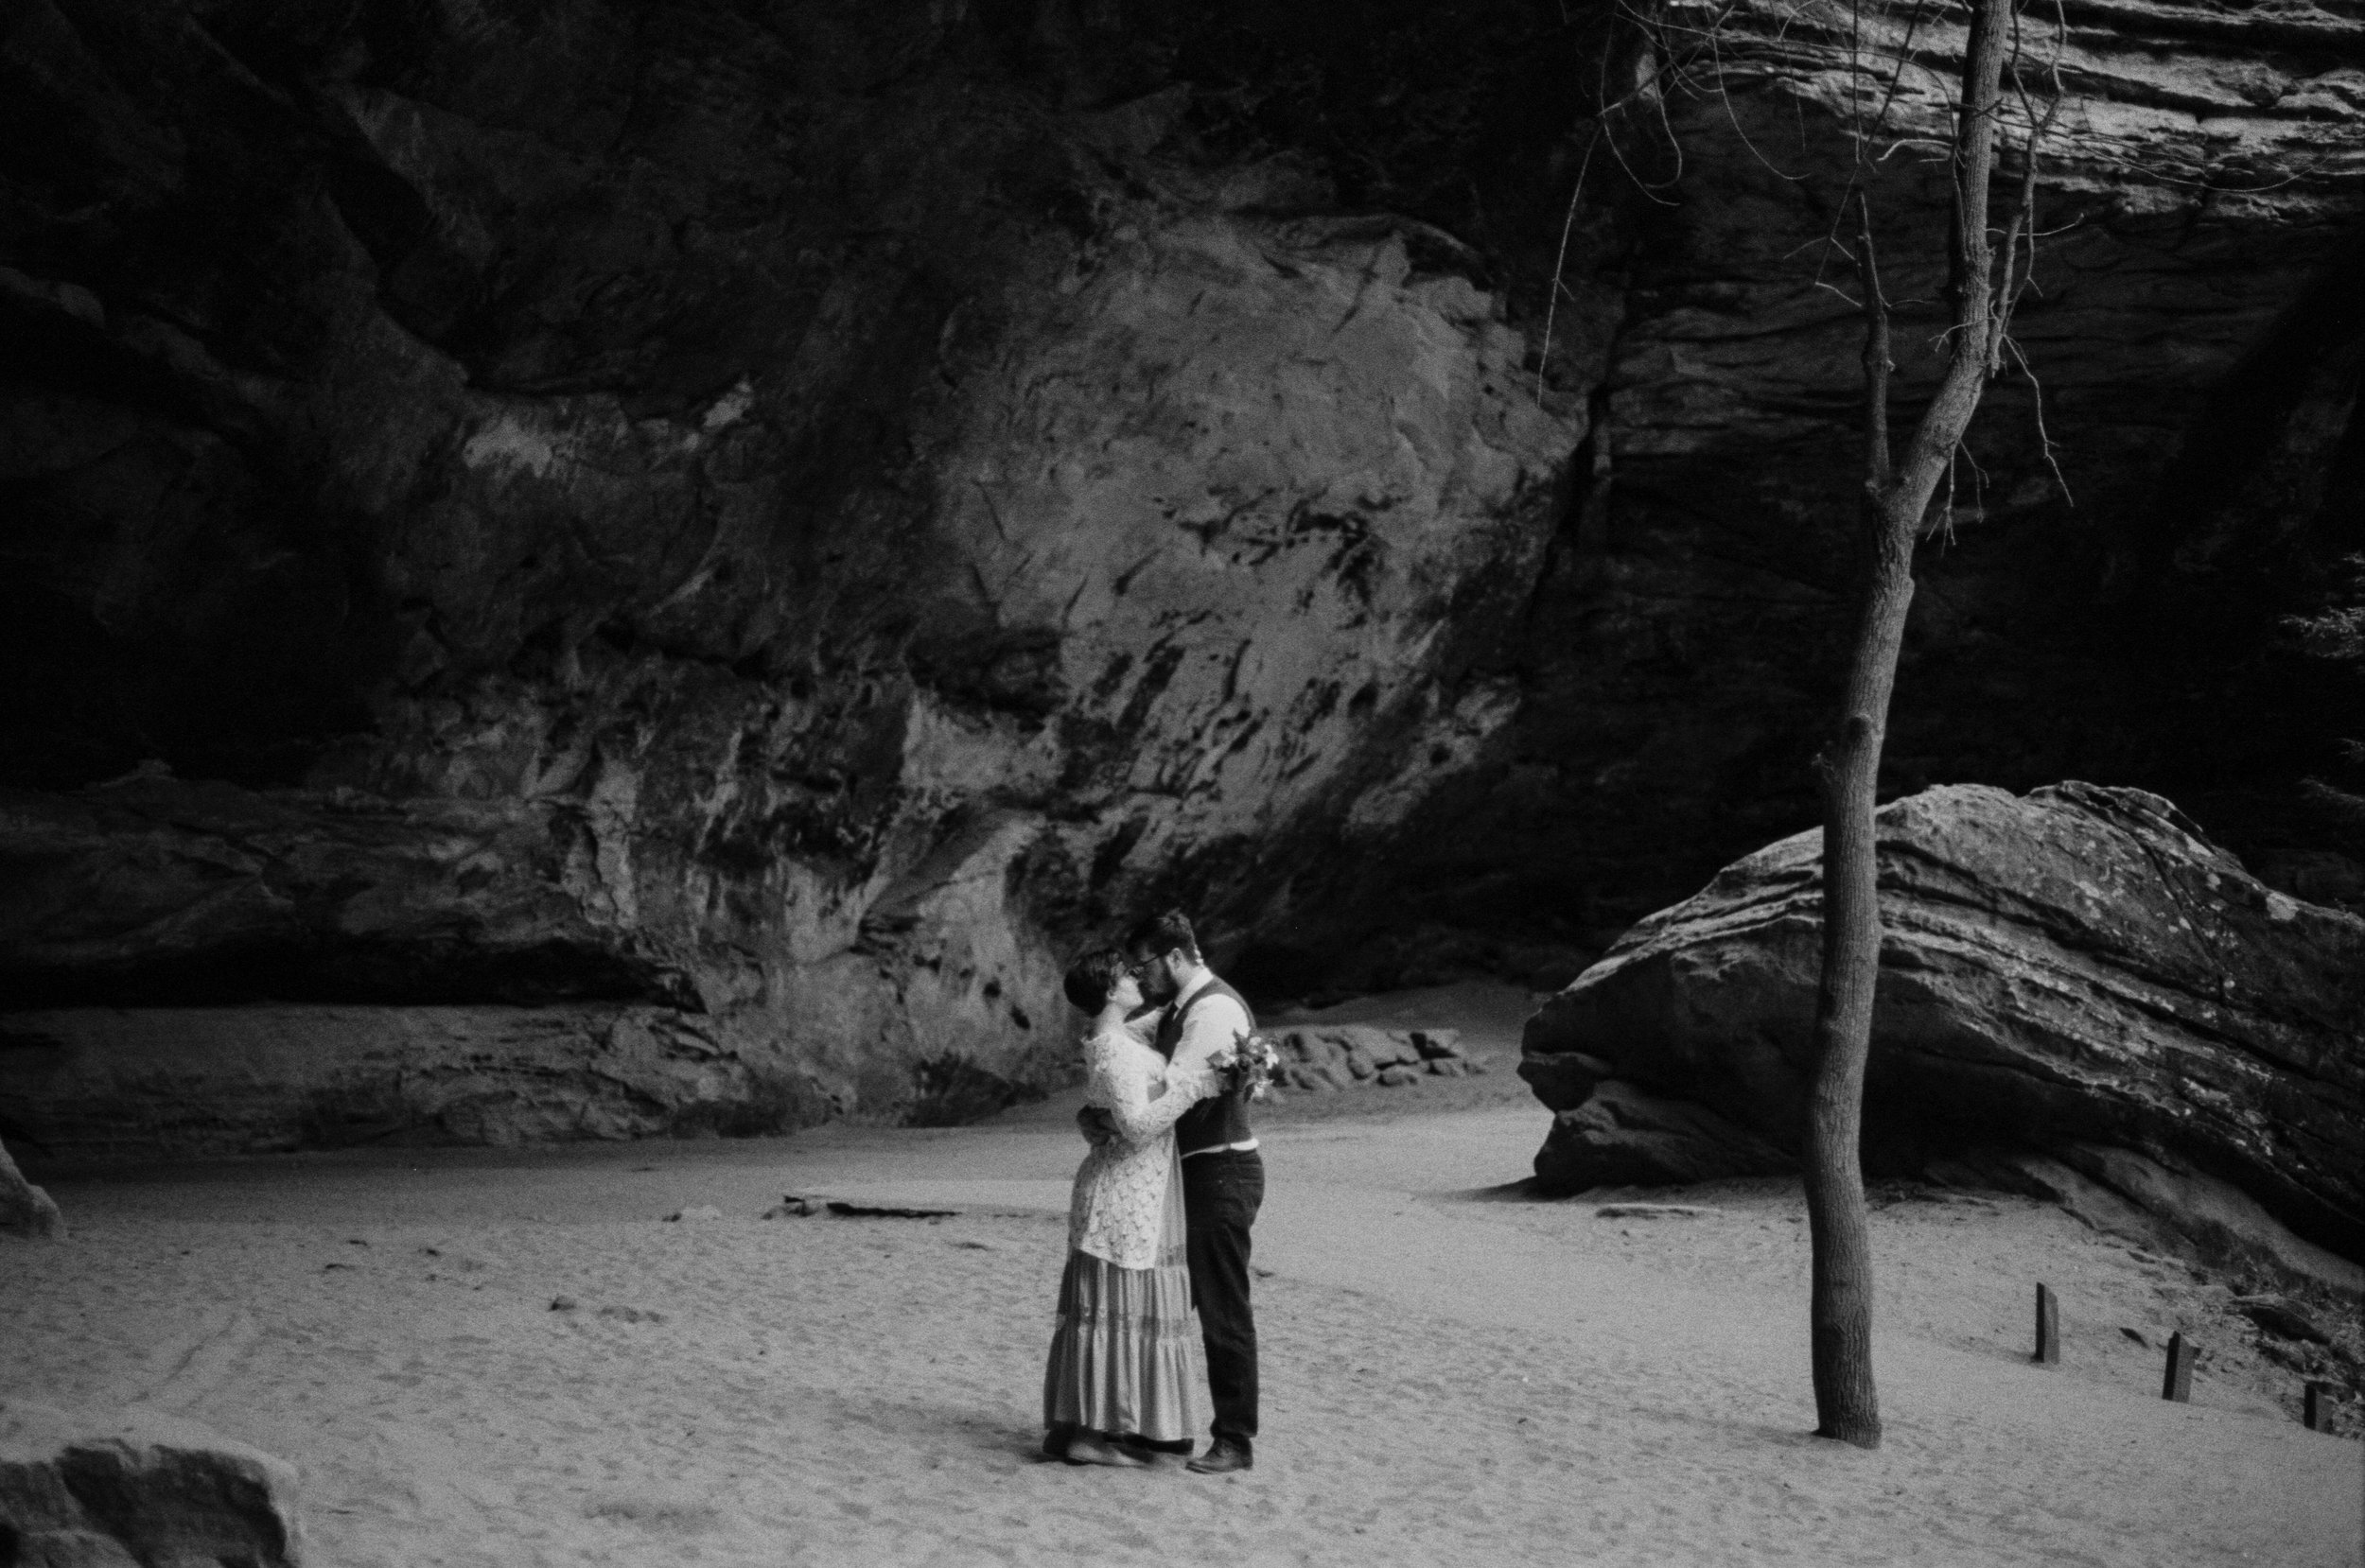 justin brie film wedding photographer in columbus ohio hocking hills sarah rose